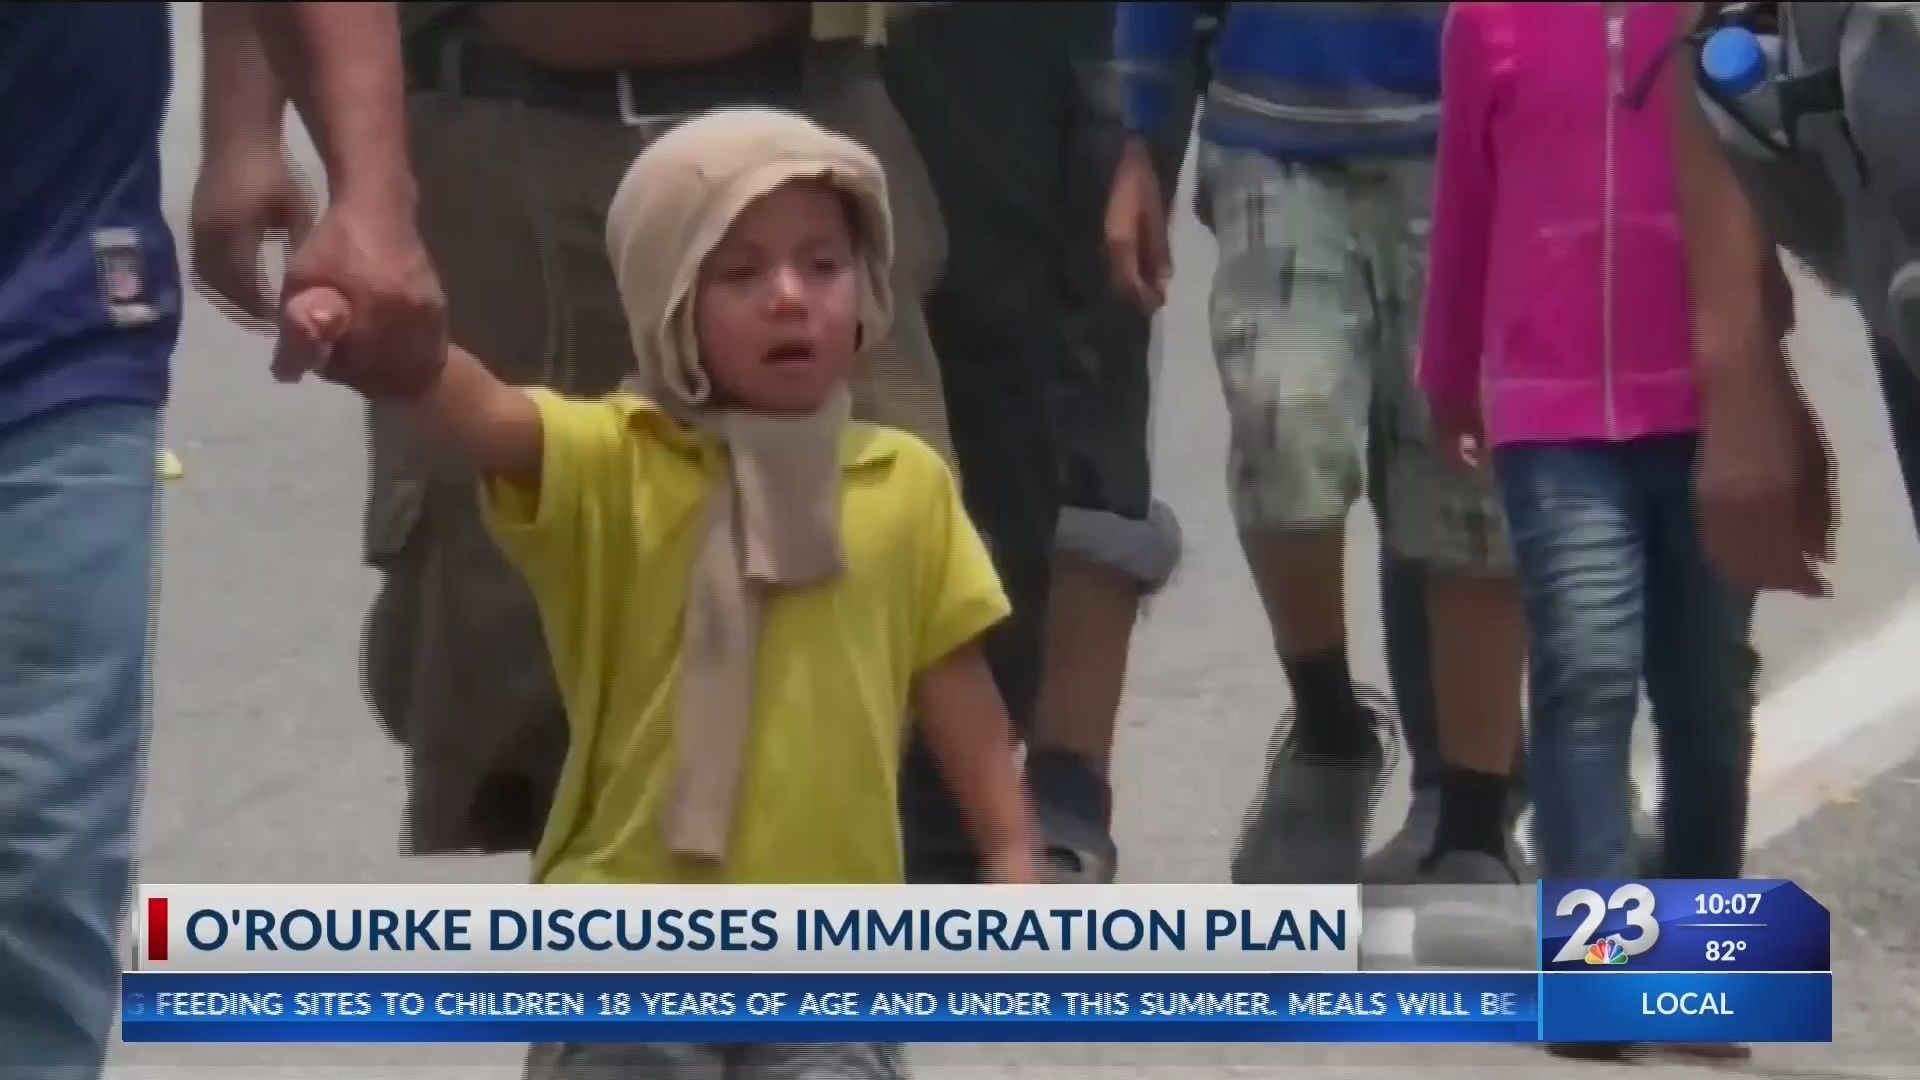 O_Rourke_discusses_immigration_plan_0_20190531034214